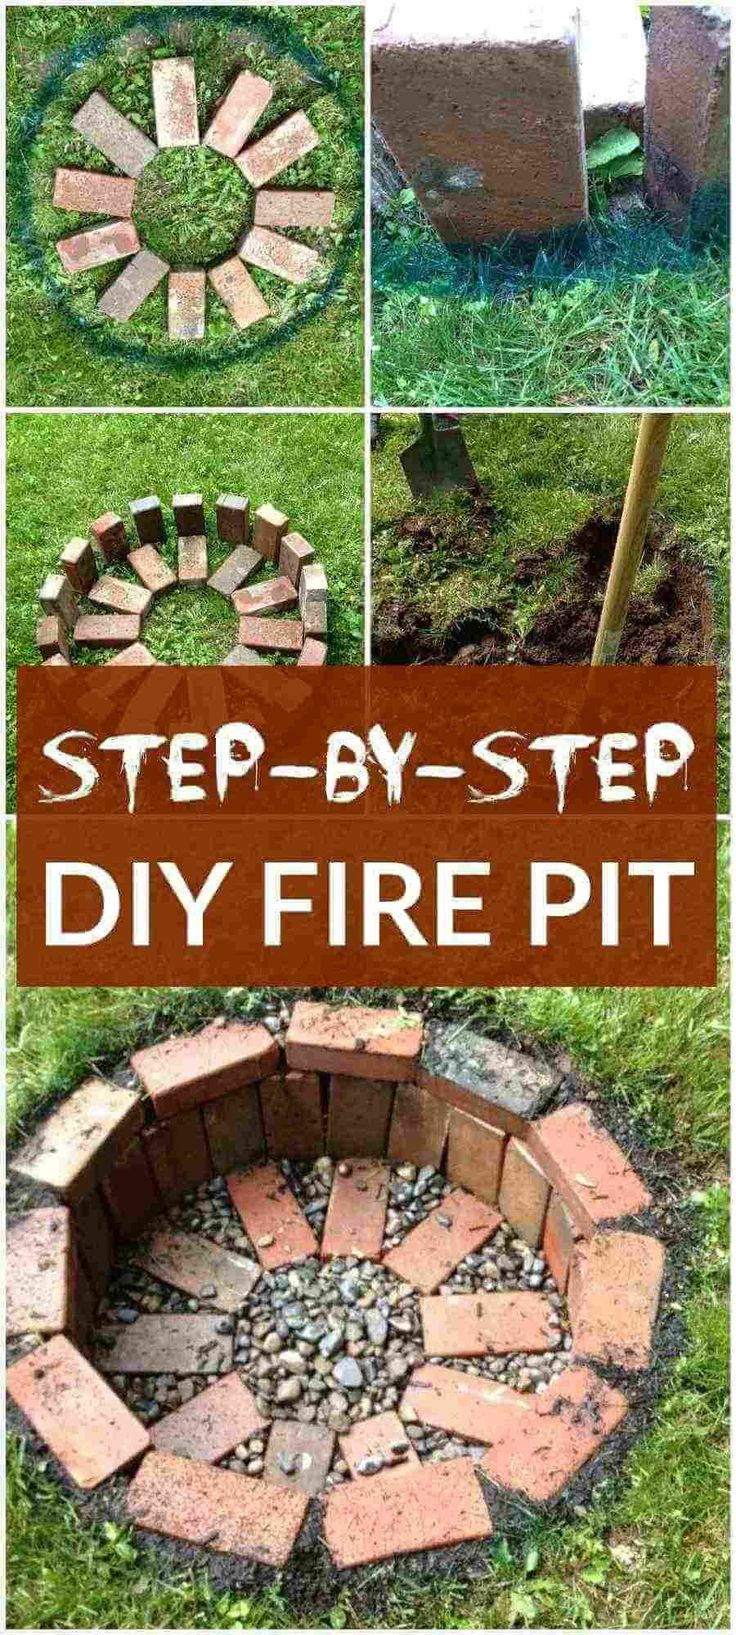 Diy fire pits 40 amazing diy outdoor fire pit ideas you for Homemade fire pit plans